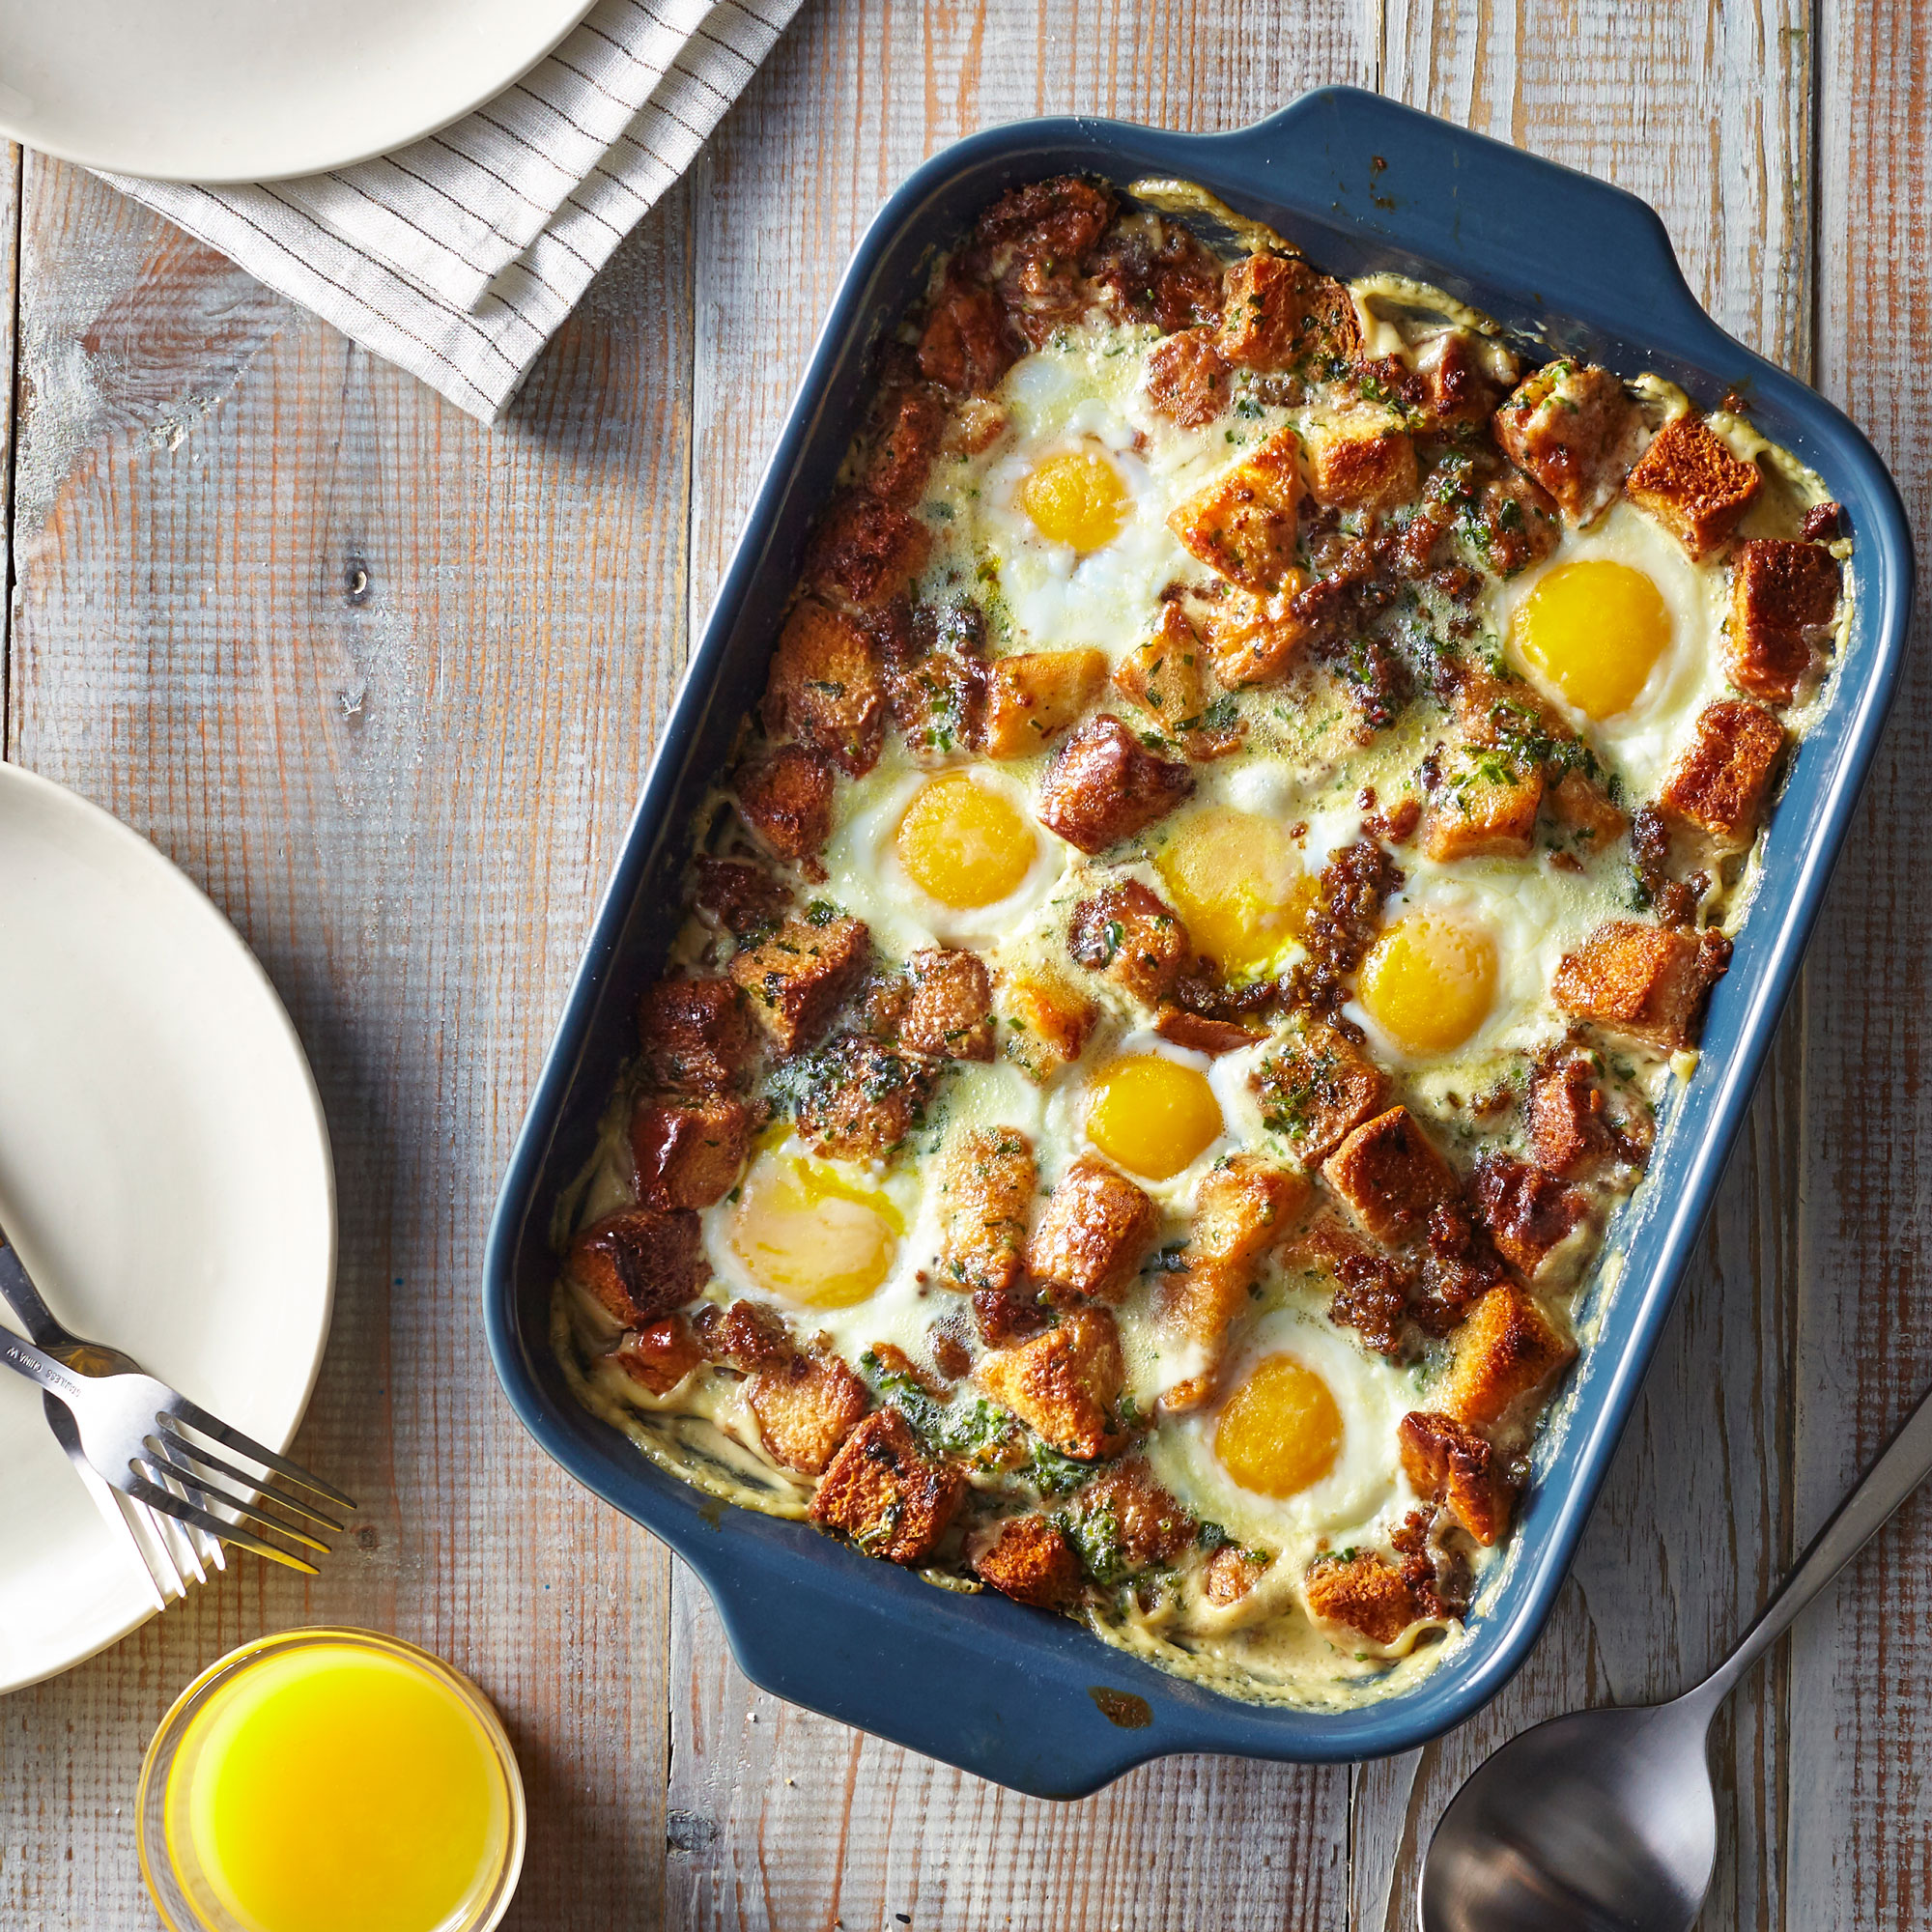 egg bake breakfast brioche christmas recipes creamy brunch food casserole bed easy recipe casseroles thanksgiving myrecipes styling tips morning occasions